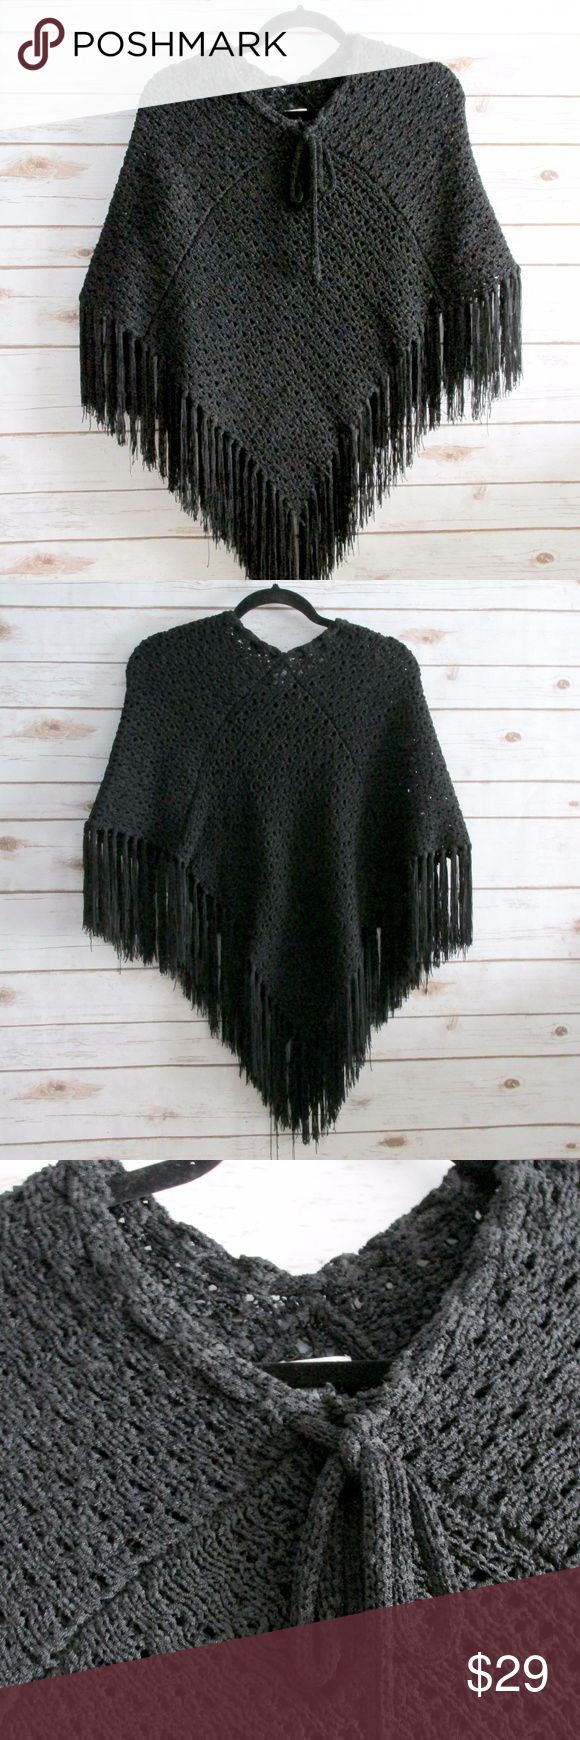 "XOXO Black Heavy Knit Crochet Fringe Poncho XOXO Black Crochet Fringe Poncho Junior Women One Size Vintage Circa 1999-2000  Condition: Pre-Owned Type: Outerwear Style: Poncho Brand: XOXO Size: OS Color: Black Measurements: 29"" Length Materials: 100% Rayon Features:  Thick chunky knit with fringe and a tie at the neck.  This poncho is heavy and well made.  Still gorgeous after sitting in my closet for so long.  DD1.8:201710290929:39:98XO XOXO Jackets & Coats"